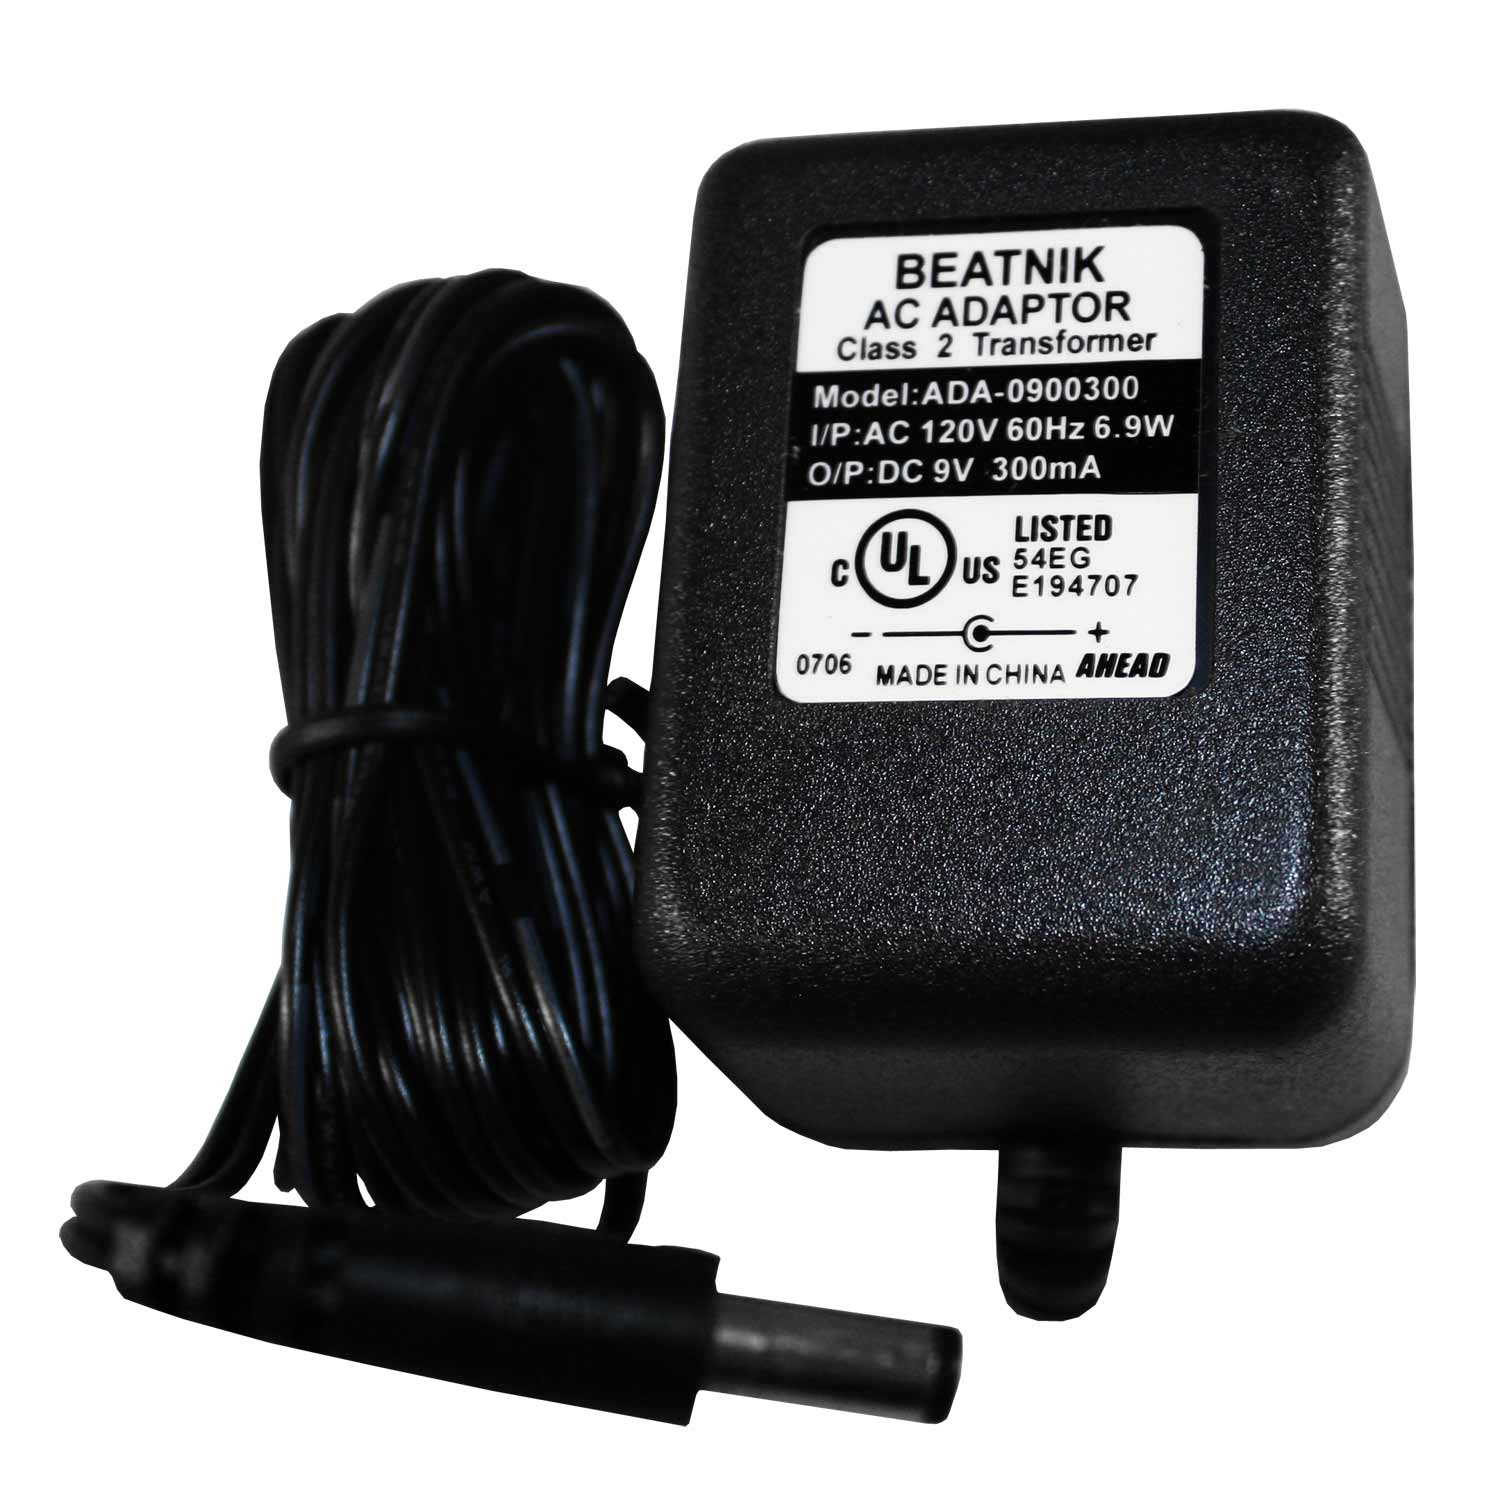 Beatnik AC Adapter, 9V, 300mA